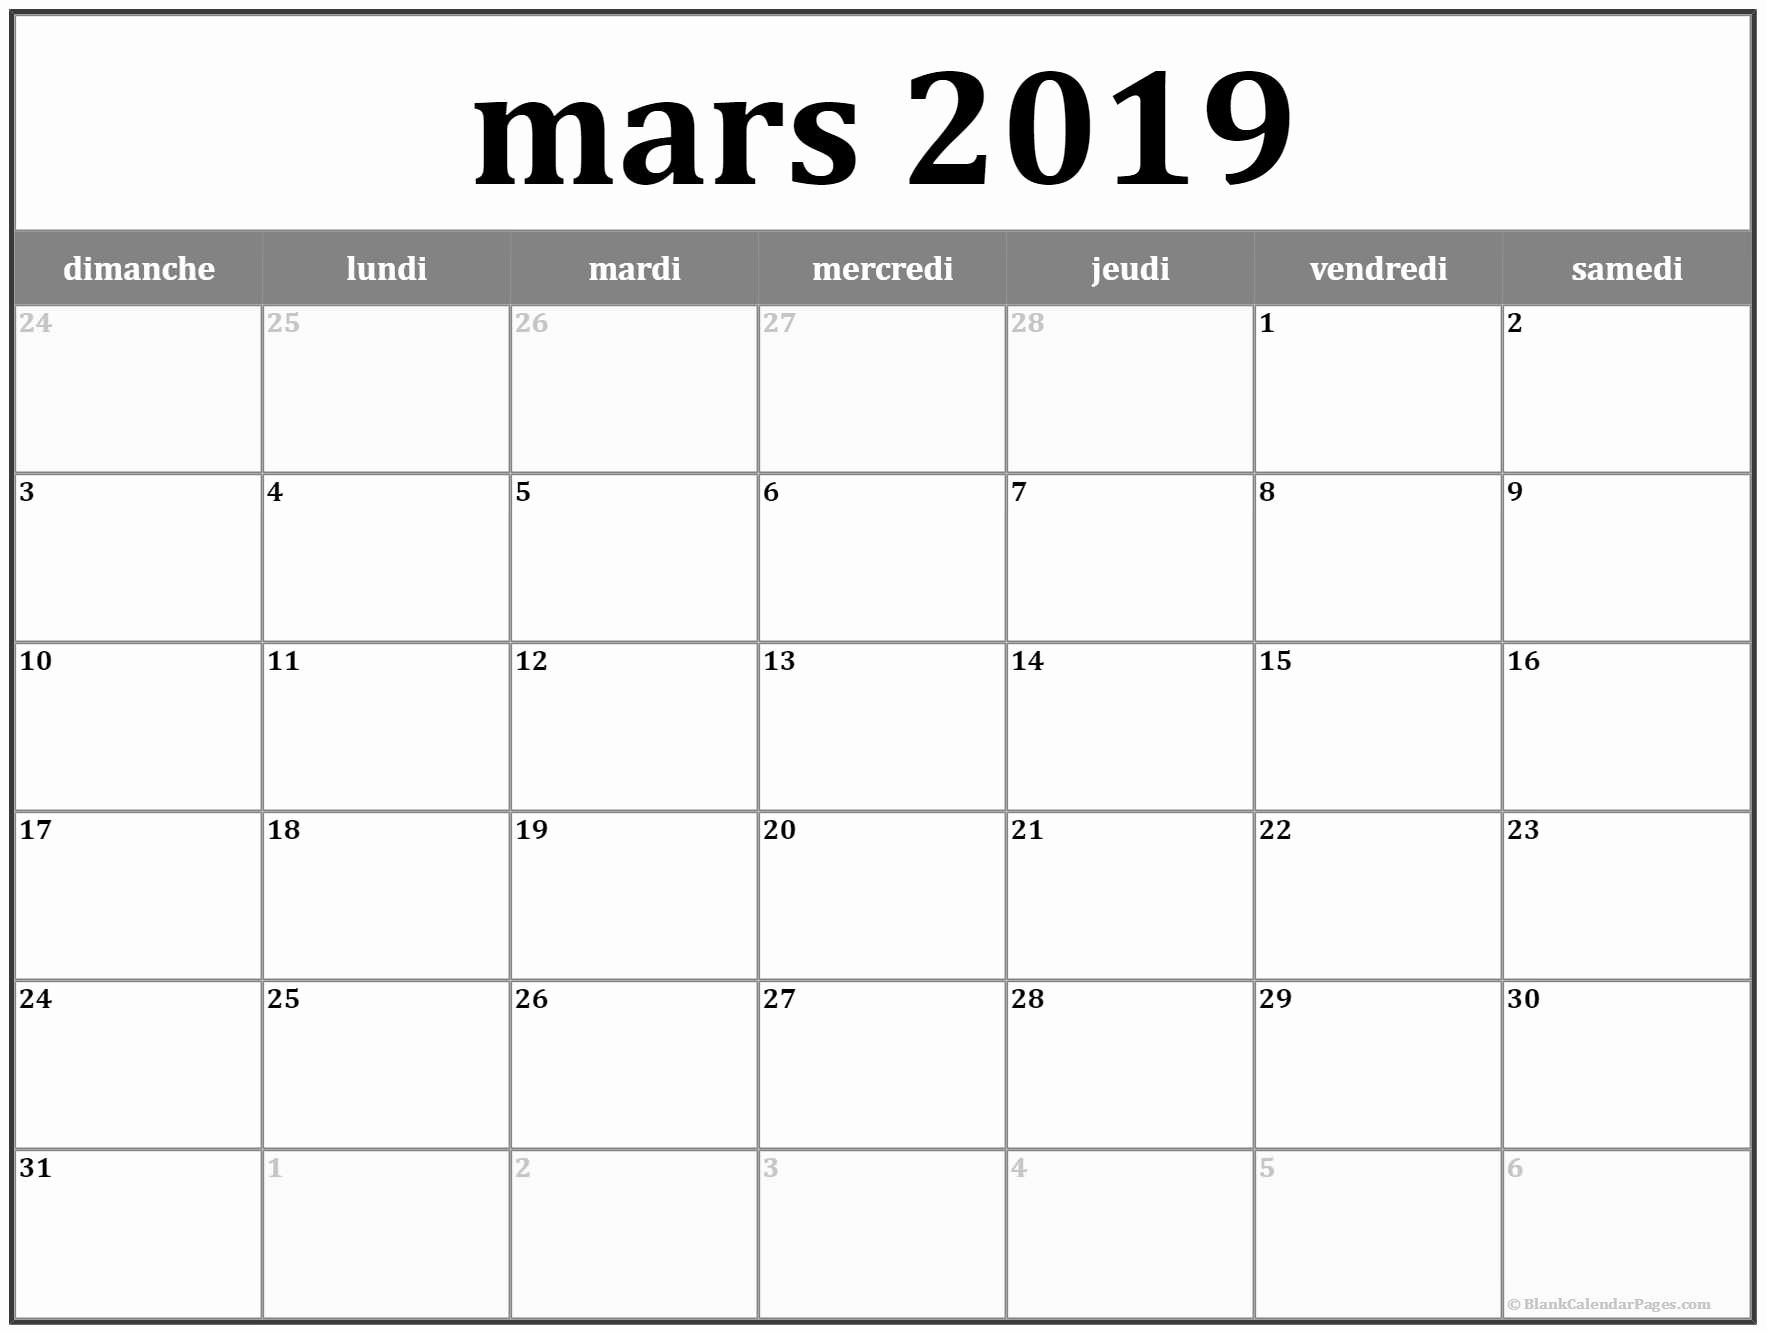 Mars 2019 Calendrier How to plan